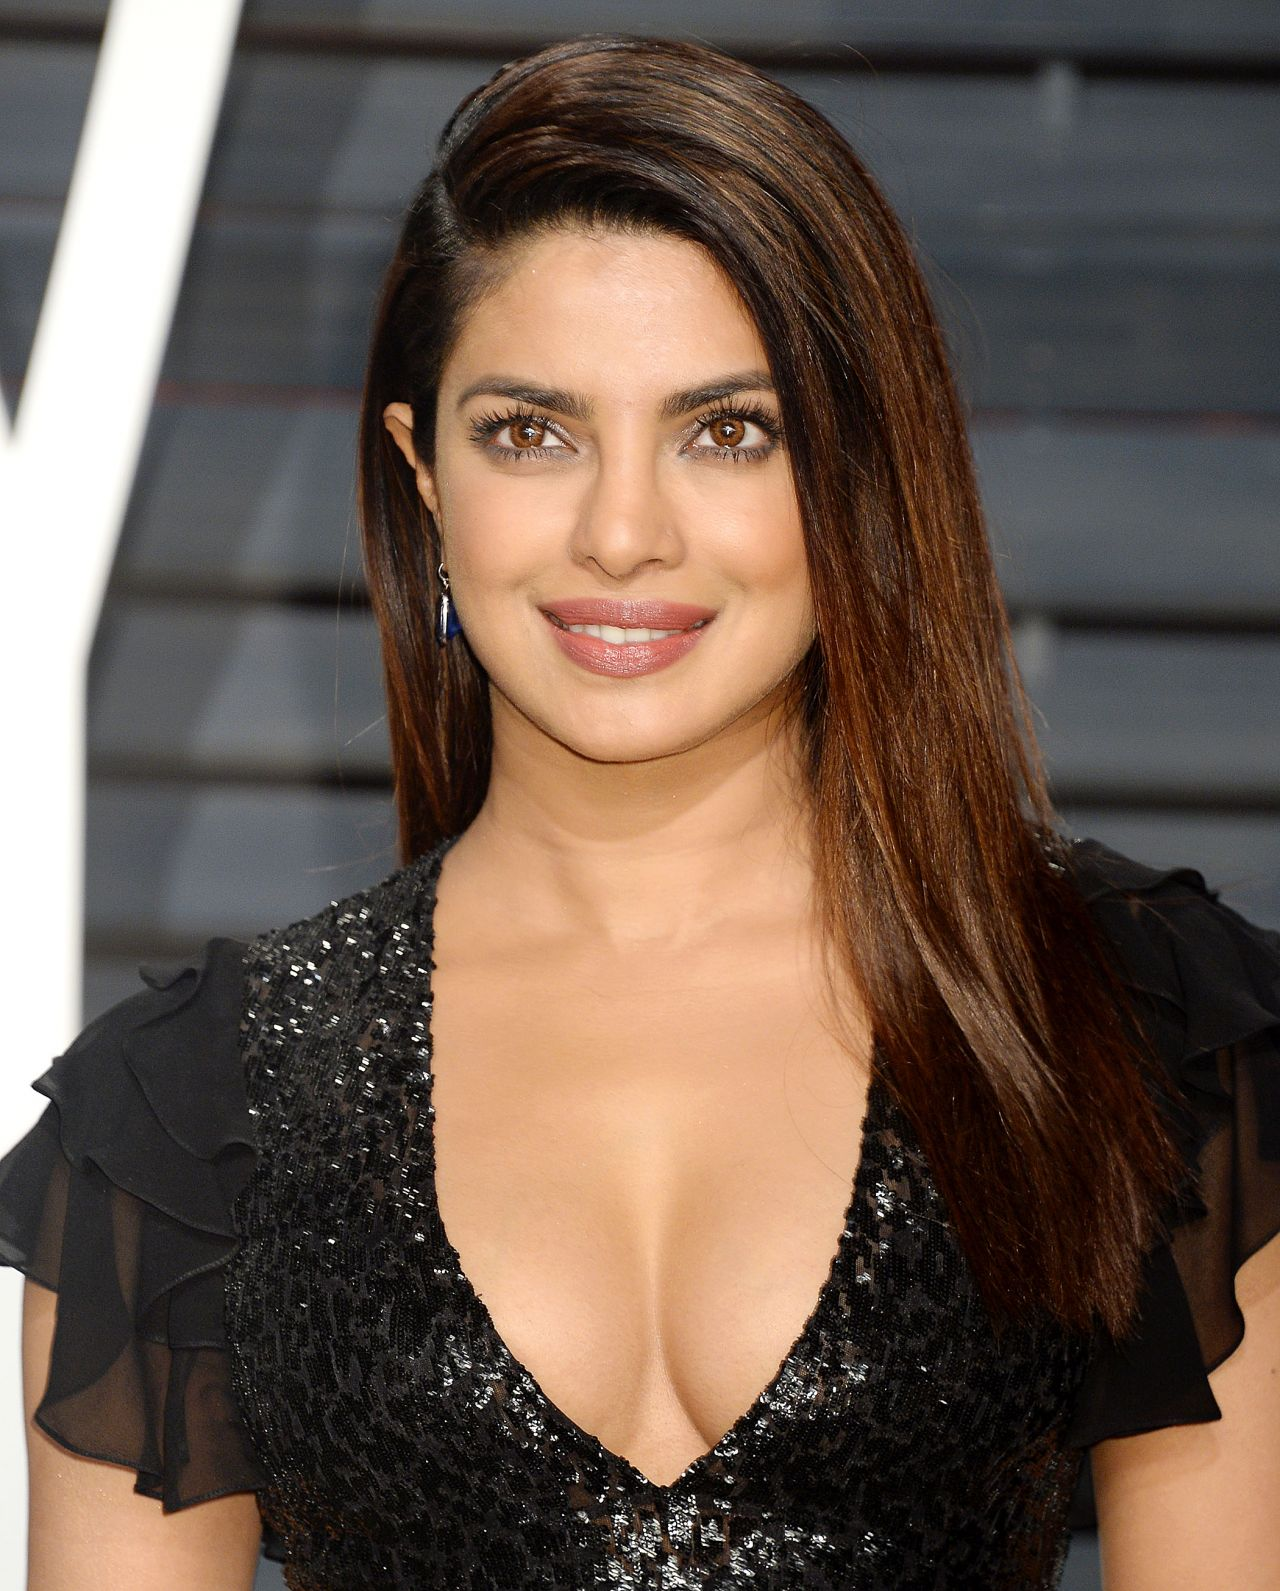 priyanka chopra - photo #5